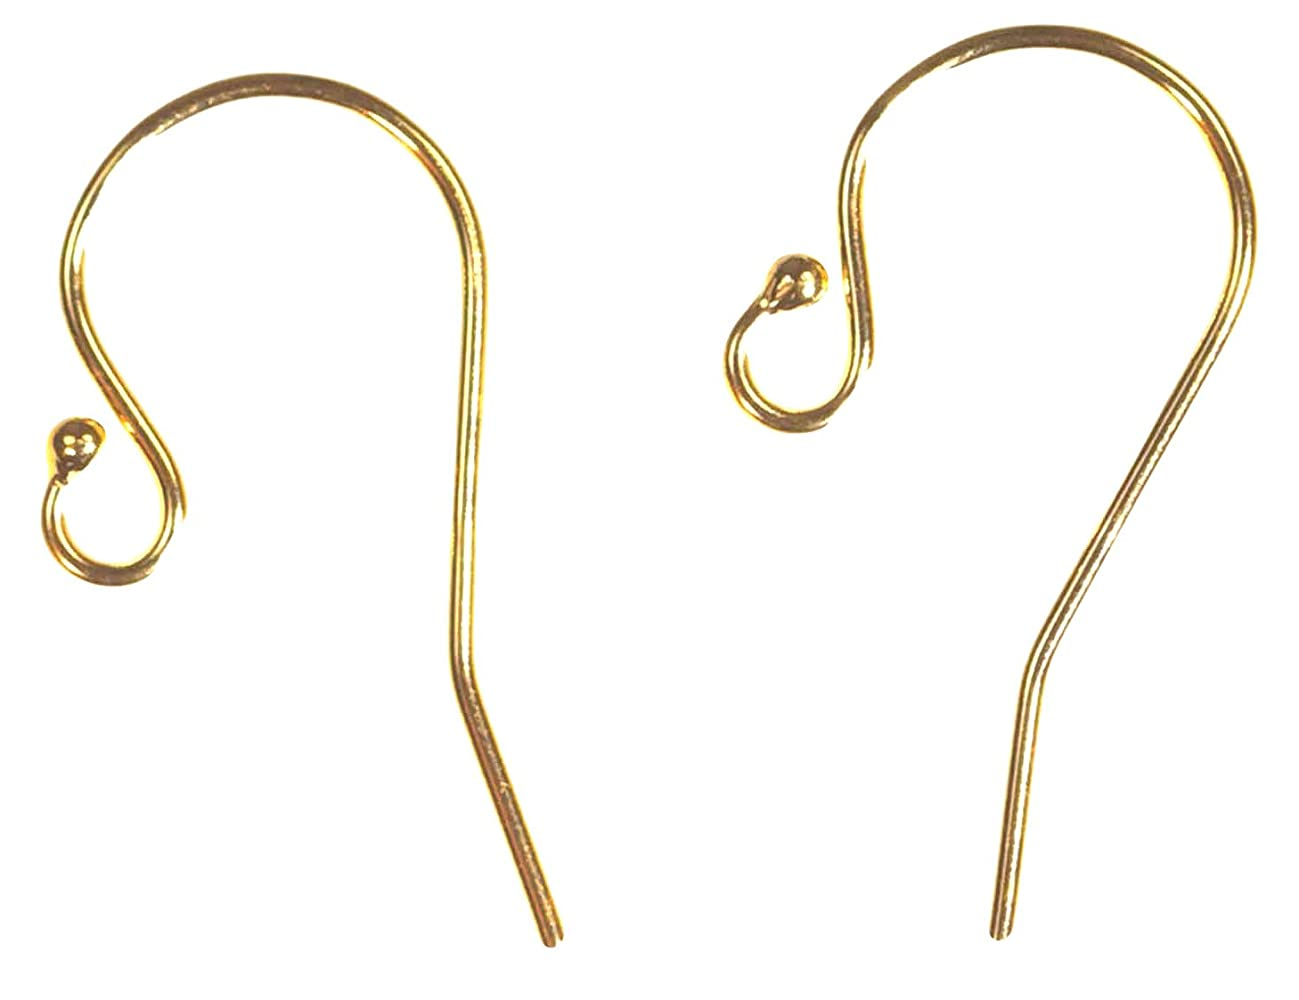 6 Pairs 14k Yellow Gold-Filled Ball End Ear Wire 11.5x20.0mm (0.66mm)